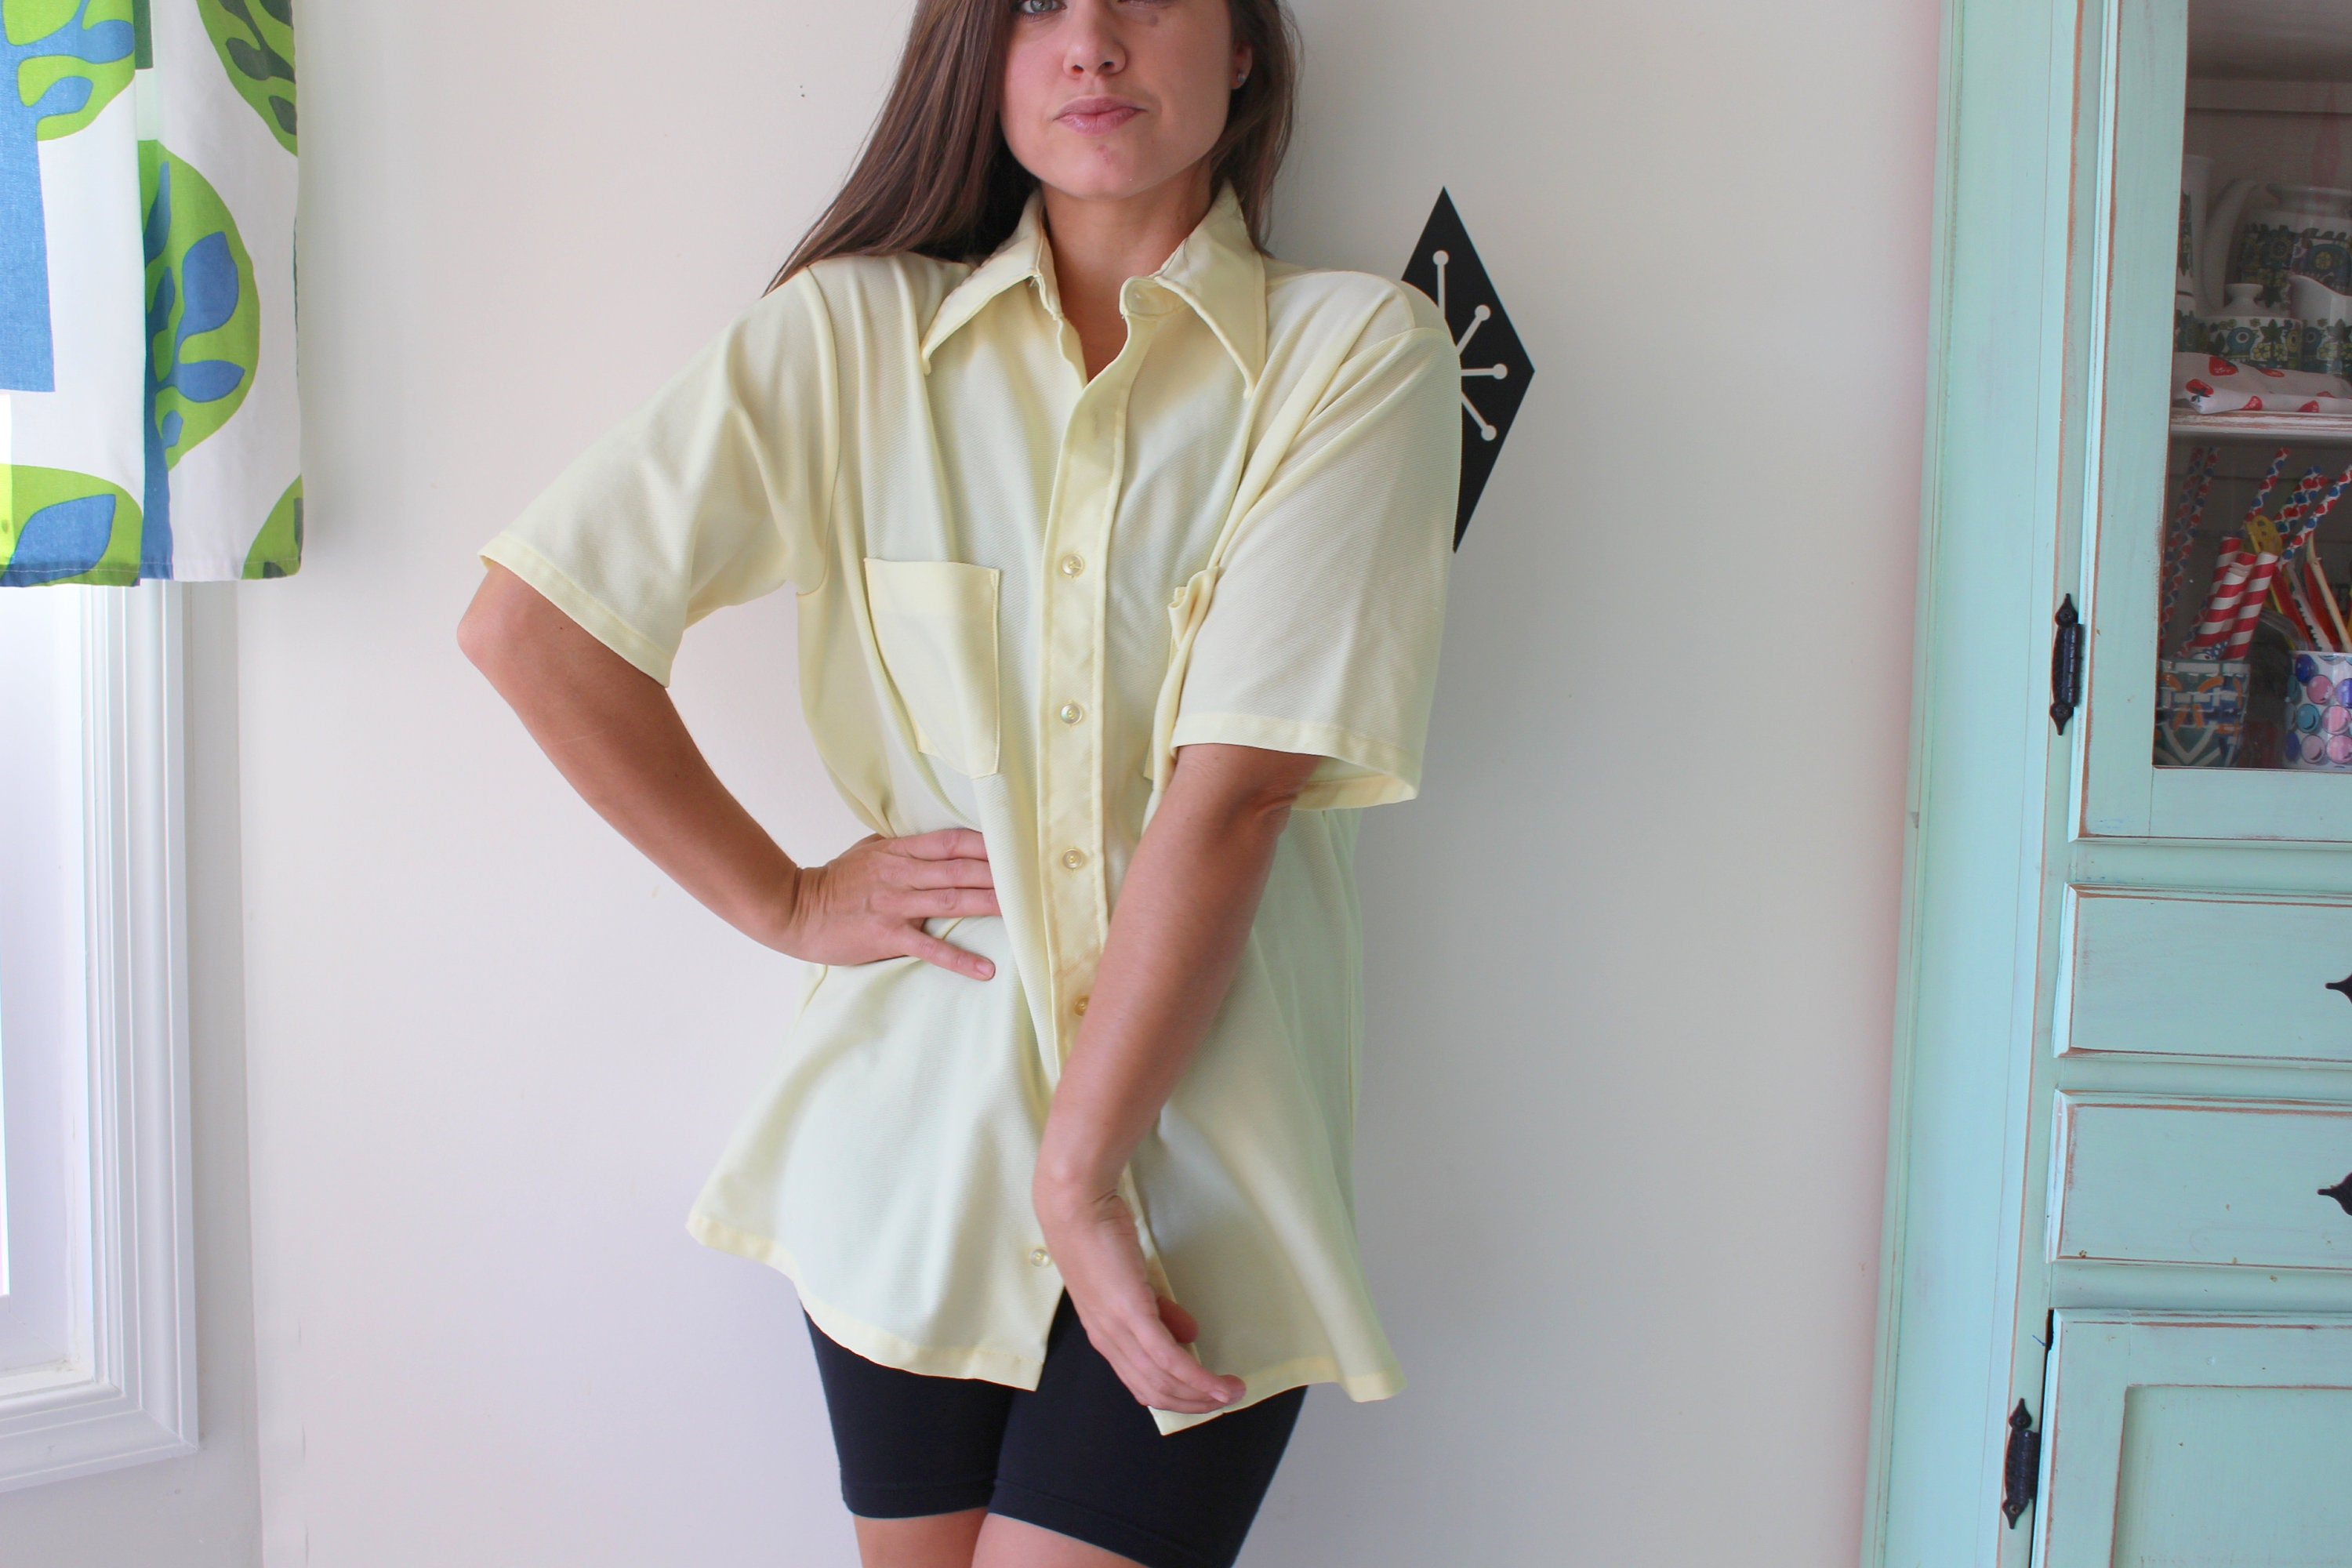 1970s Men's Shirt Styles – Vintage 70s Shirts for Guys 1970S Vintage Yellow Hipster Top..size Medium...70S Show. Mens Clothing. Retro. Sporty. Classic. Prep. College. Fathers Day. Kitsch. Frat $32.50 AT vintagedancer.com